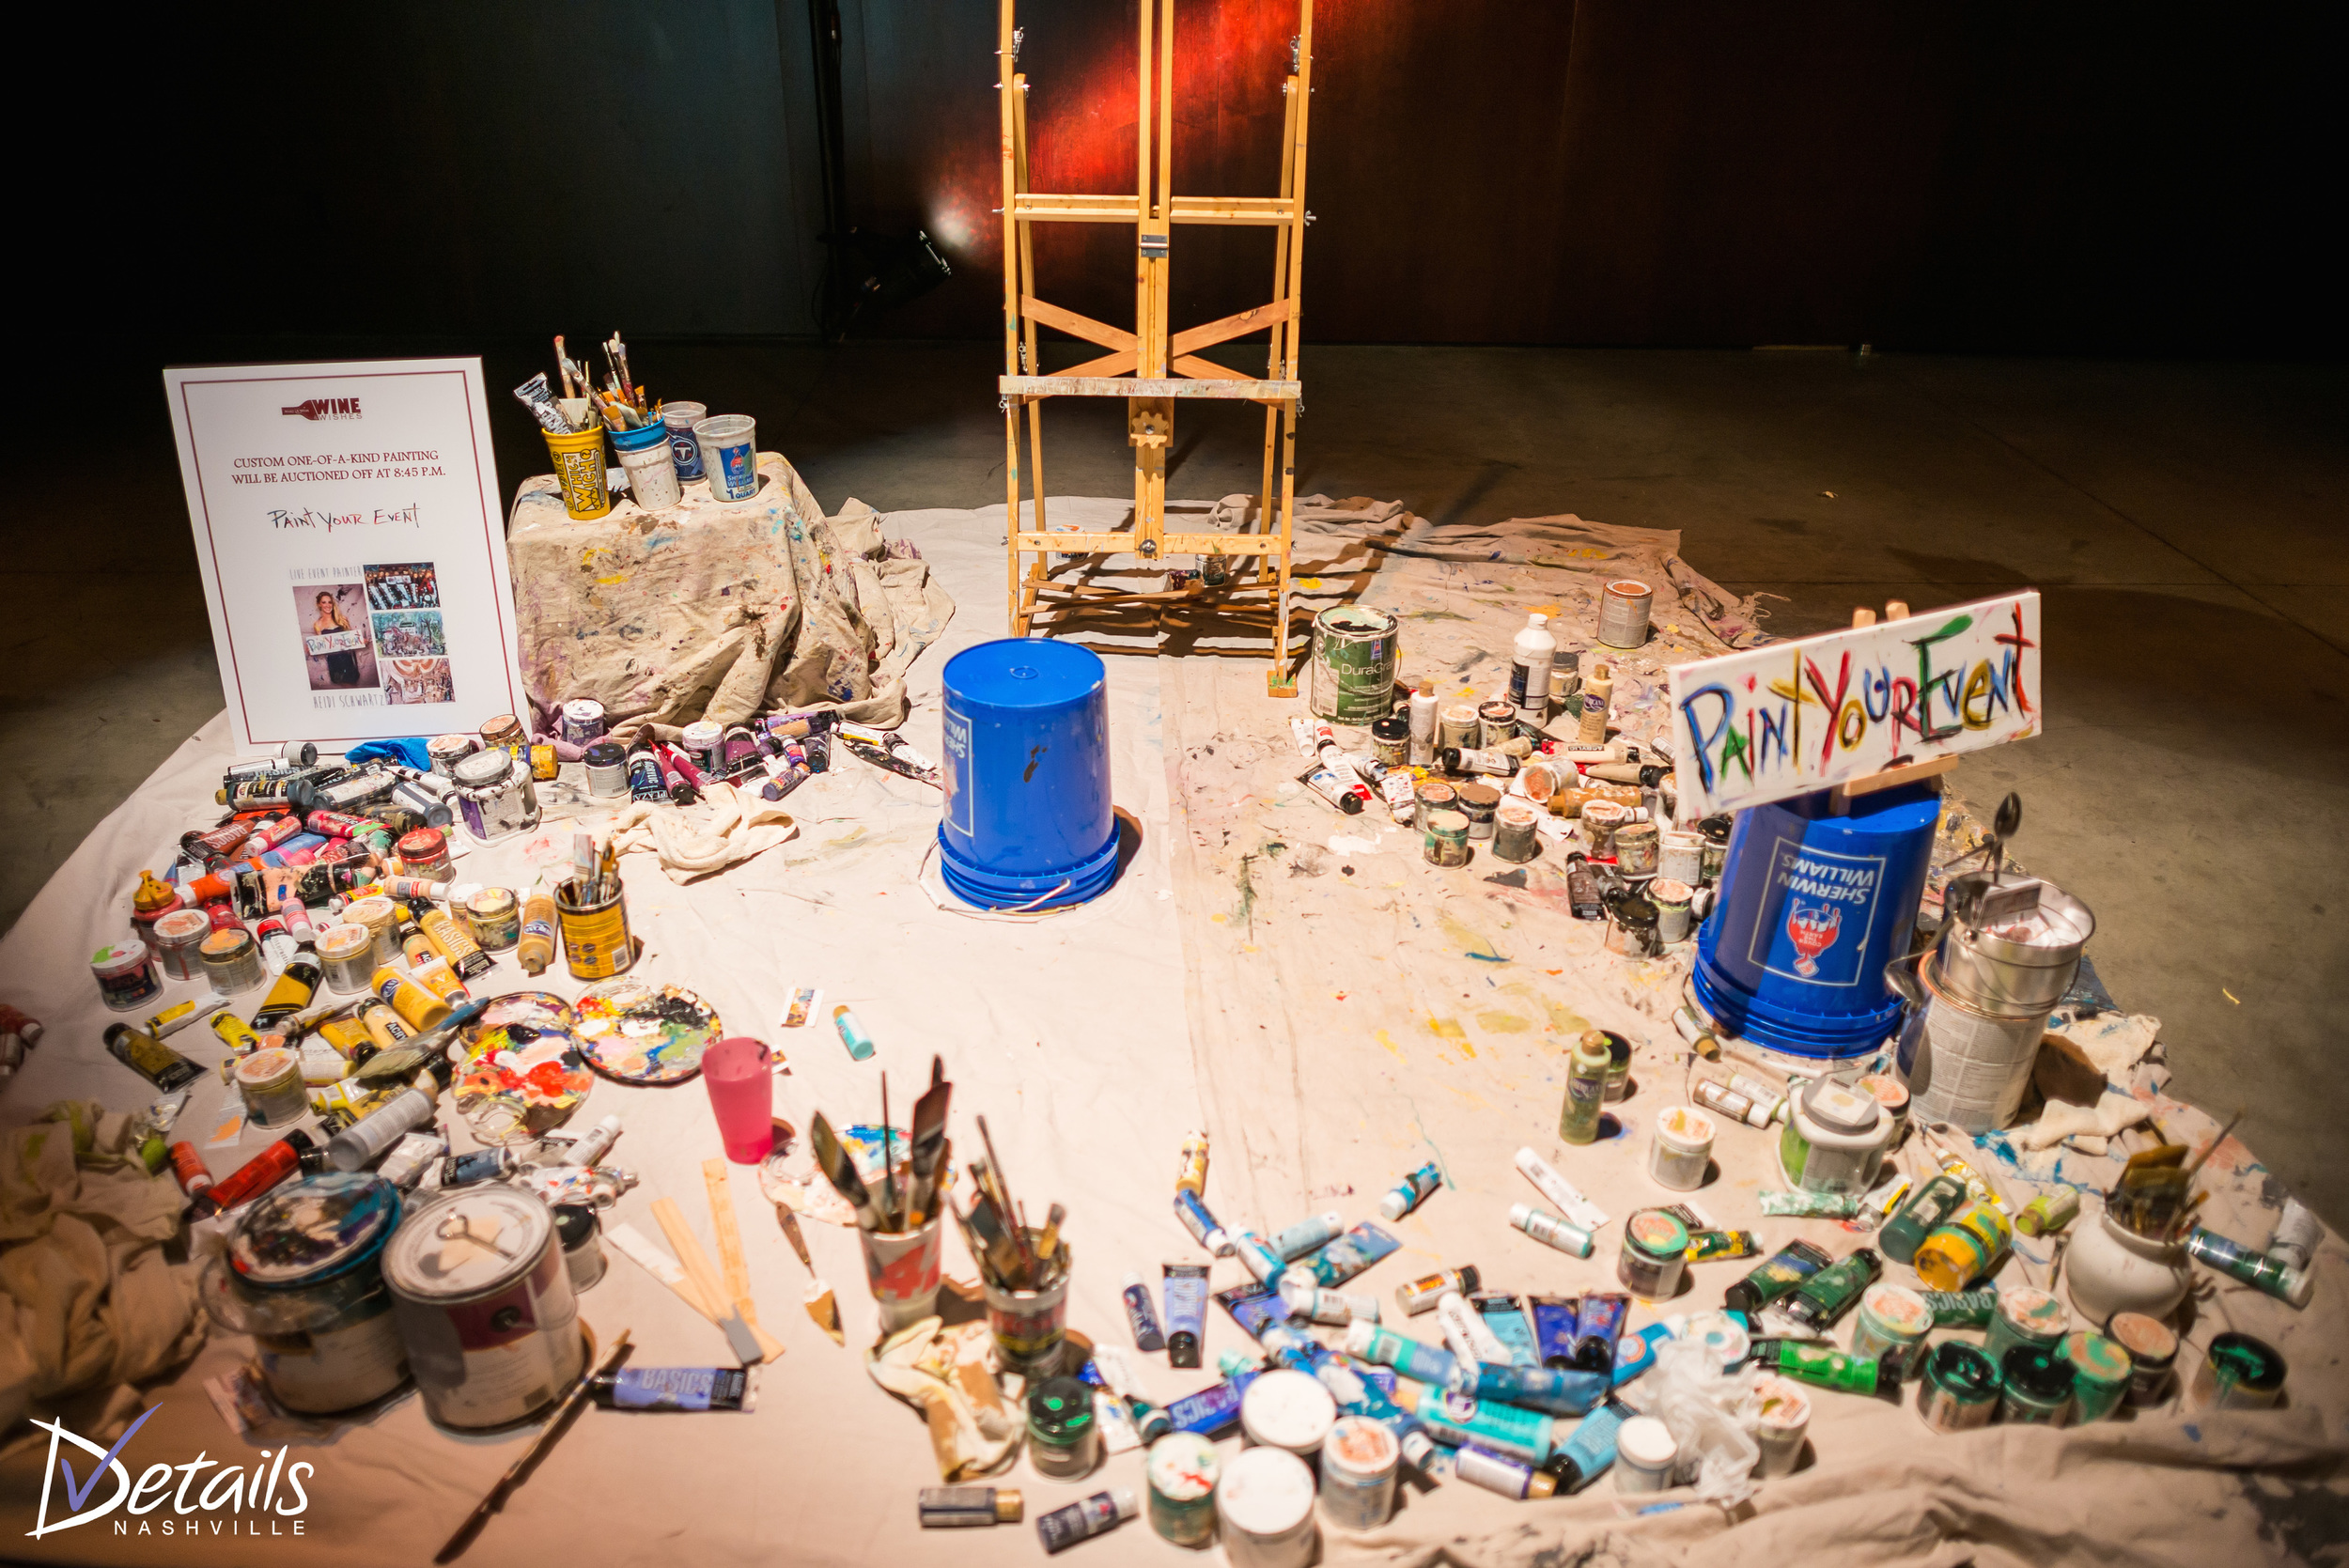 Paint Your Event